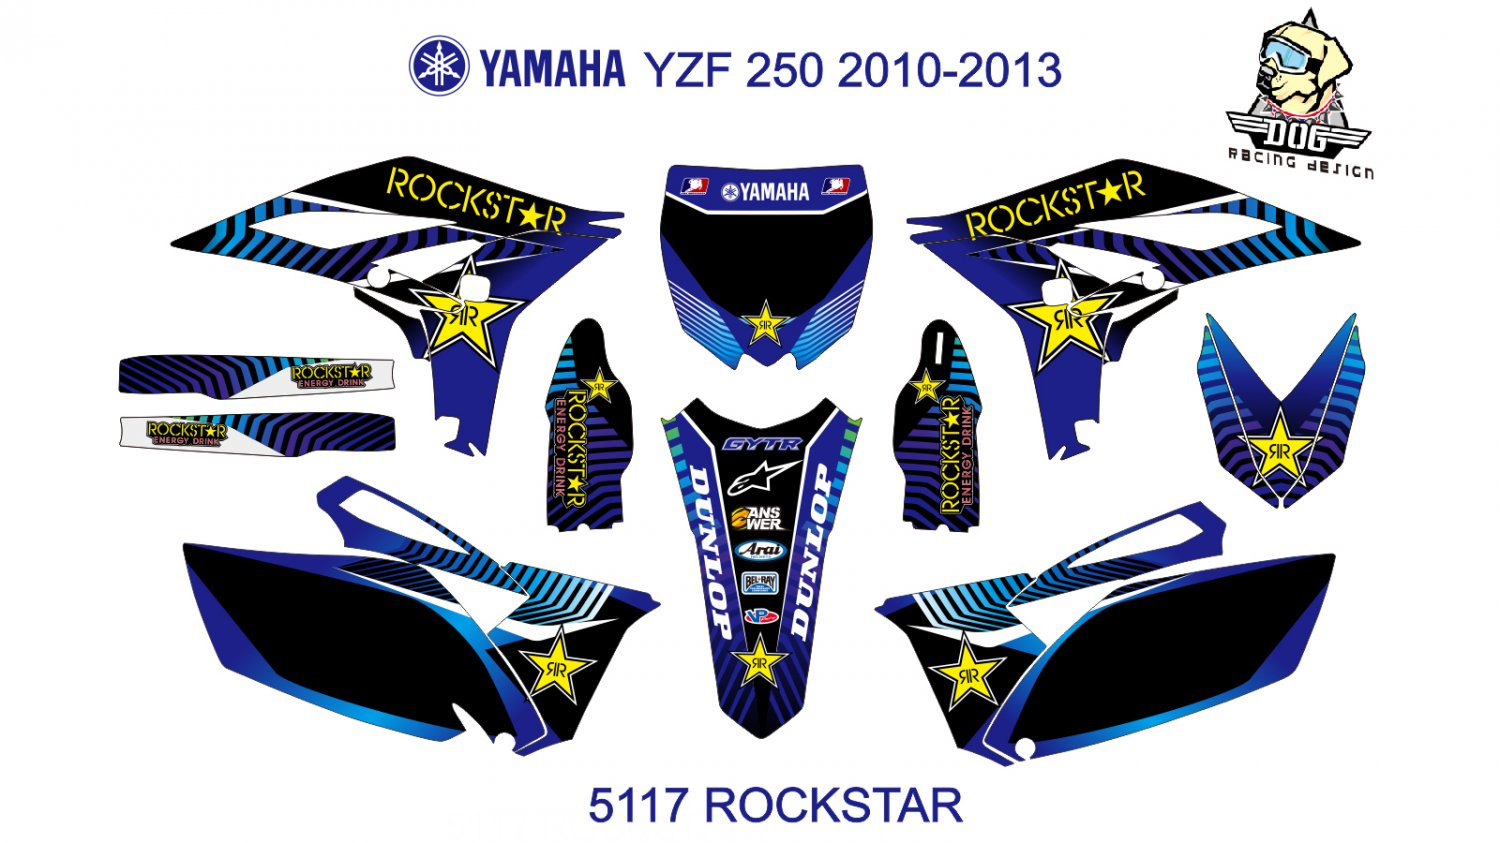 YAMAHA YZF 250 2010-2013 GRAPHIC DECAL KIT CODE.5117